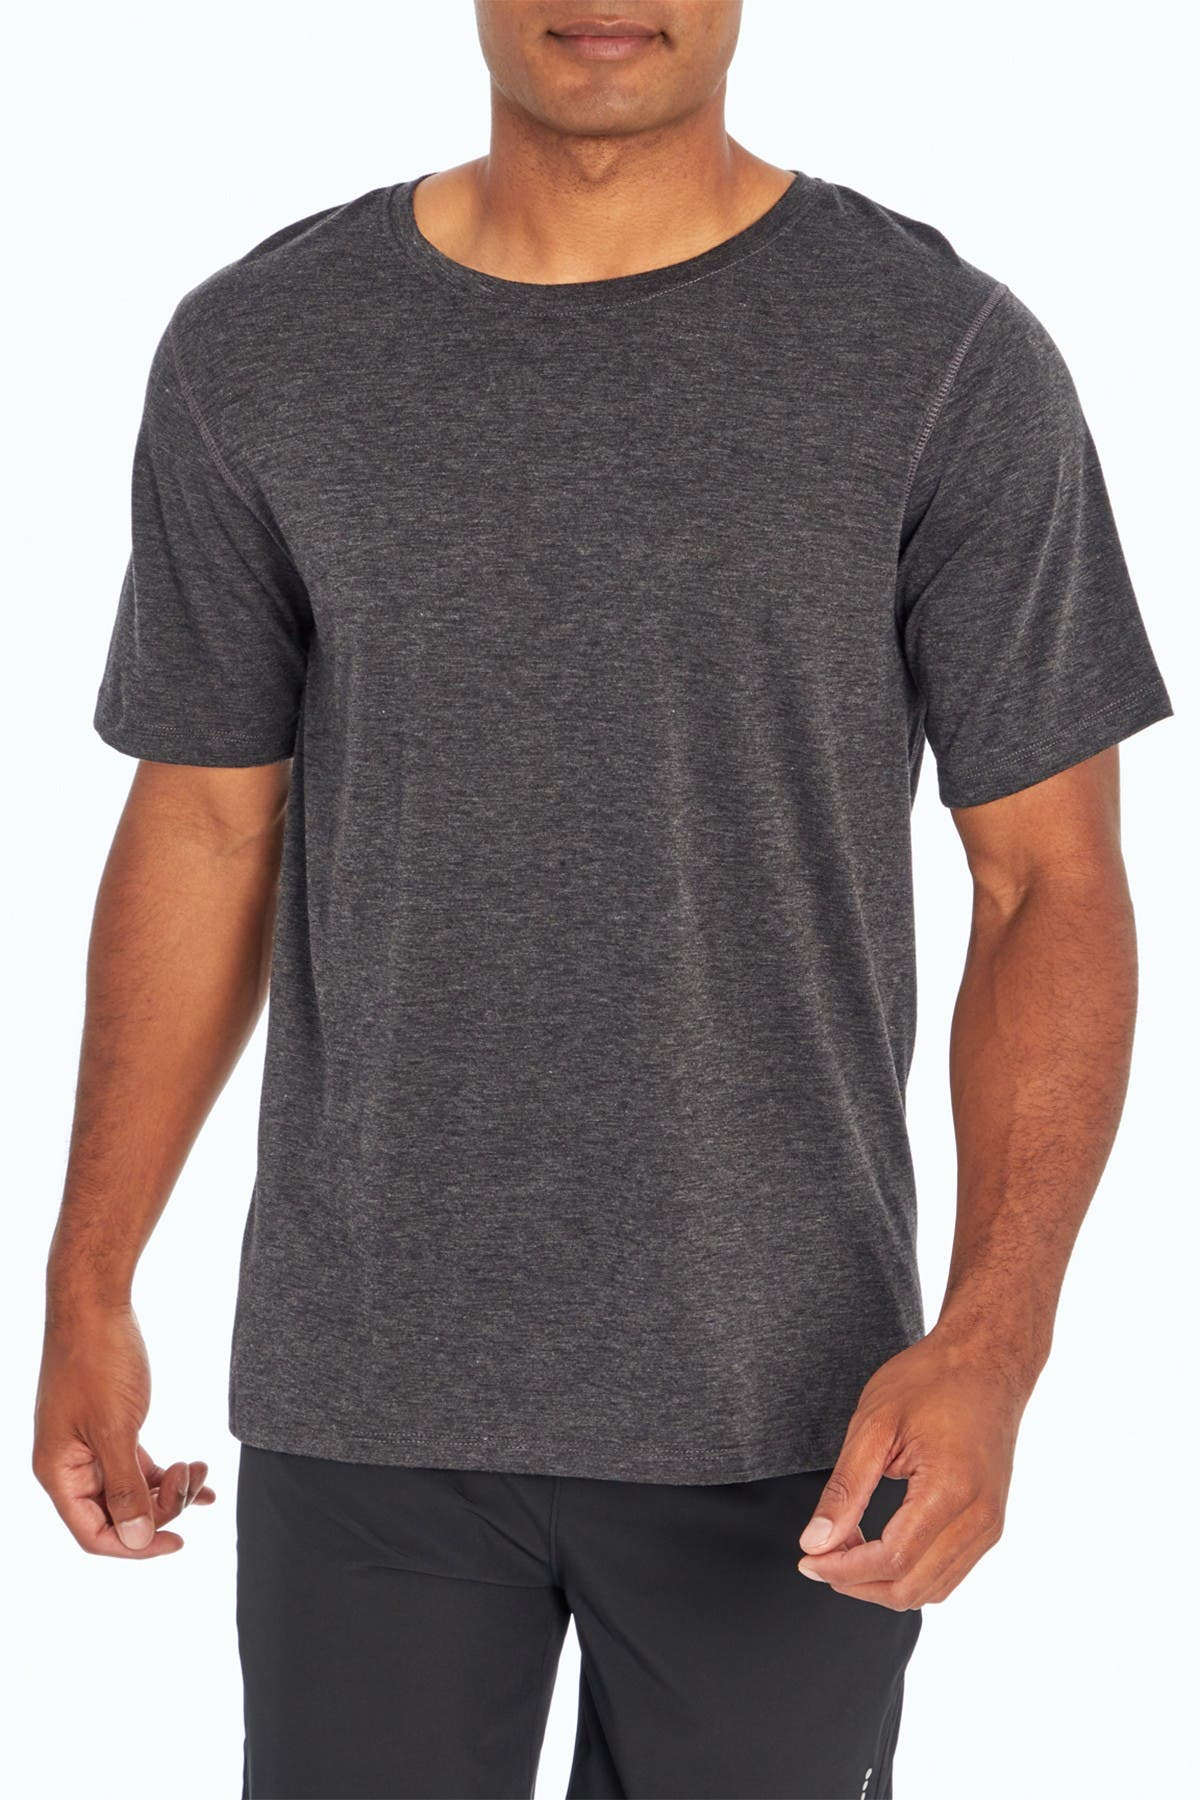 Image of The Balance Collection Back to Basics T-Shirt